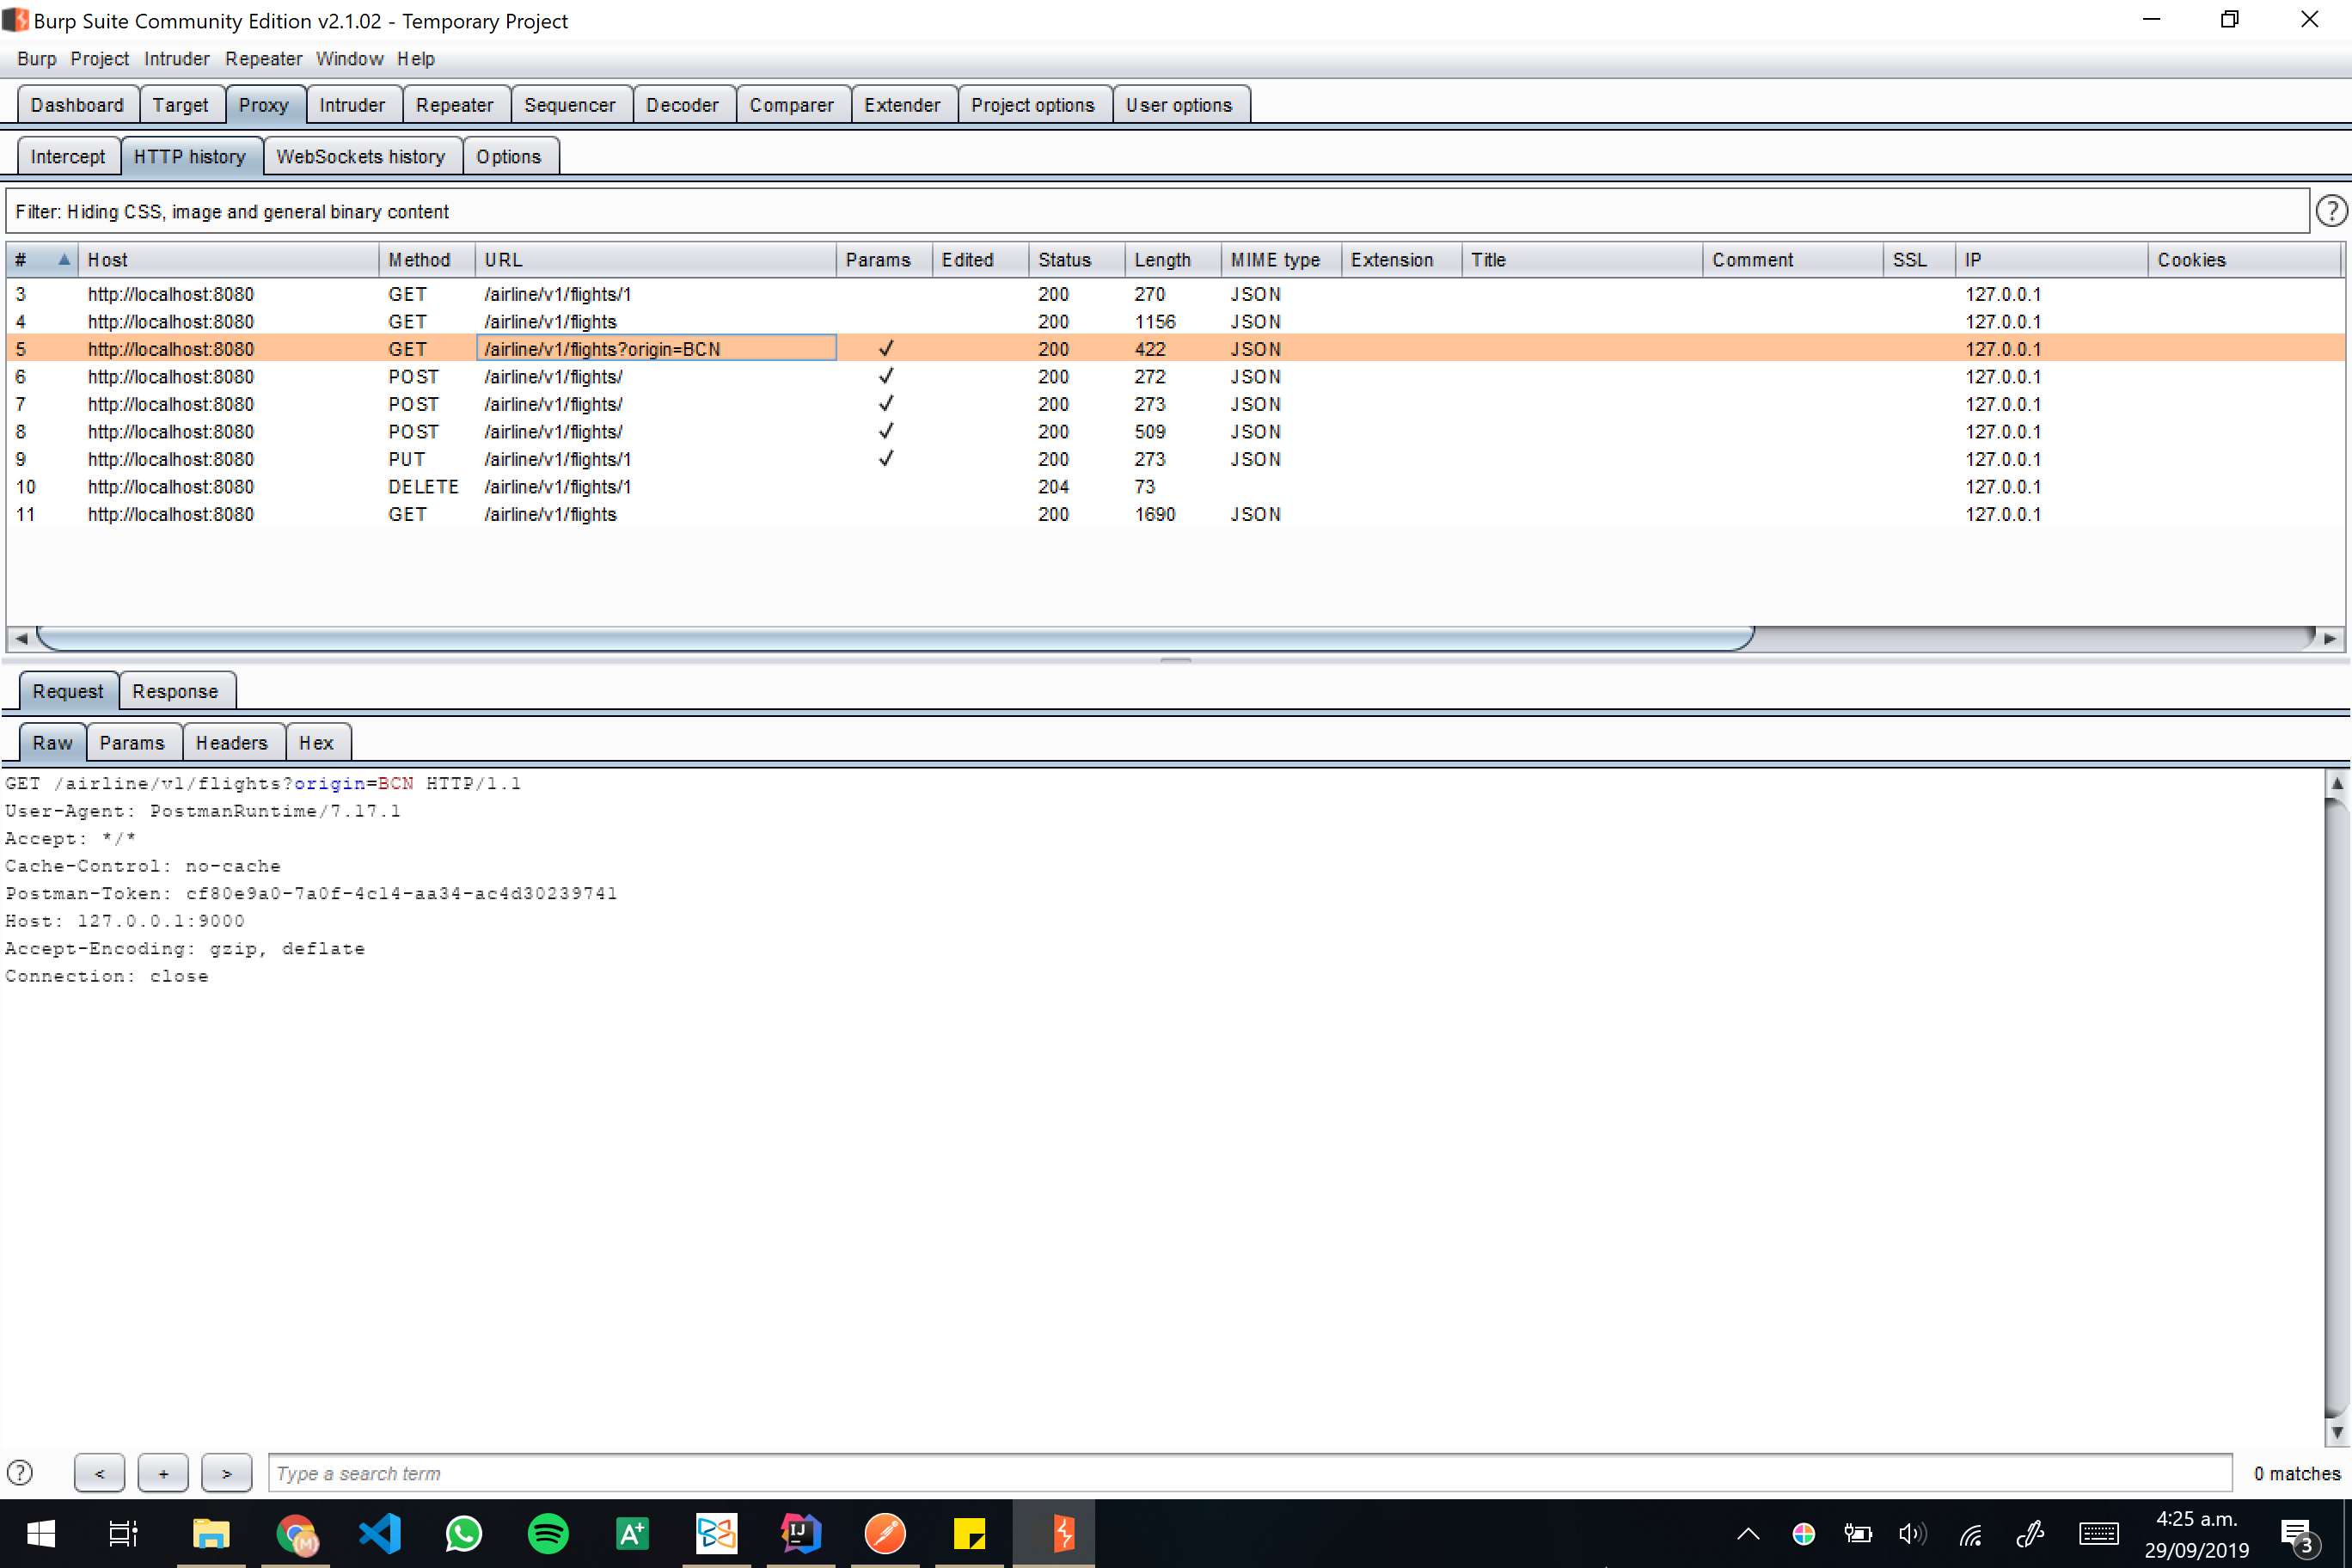 Burp screenshot 09